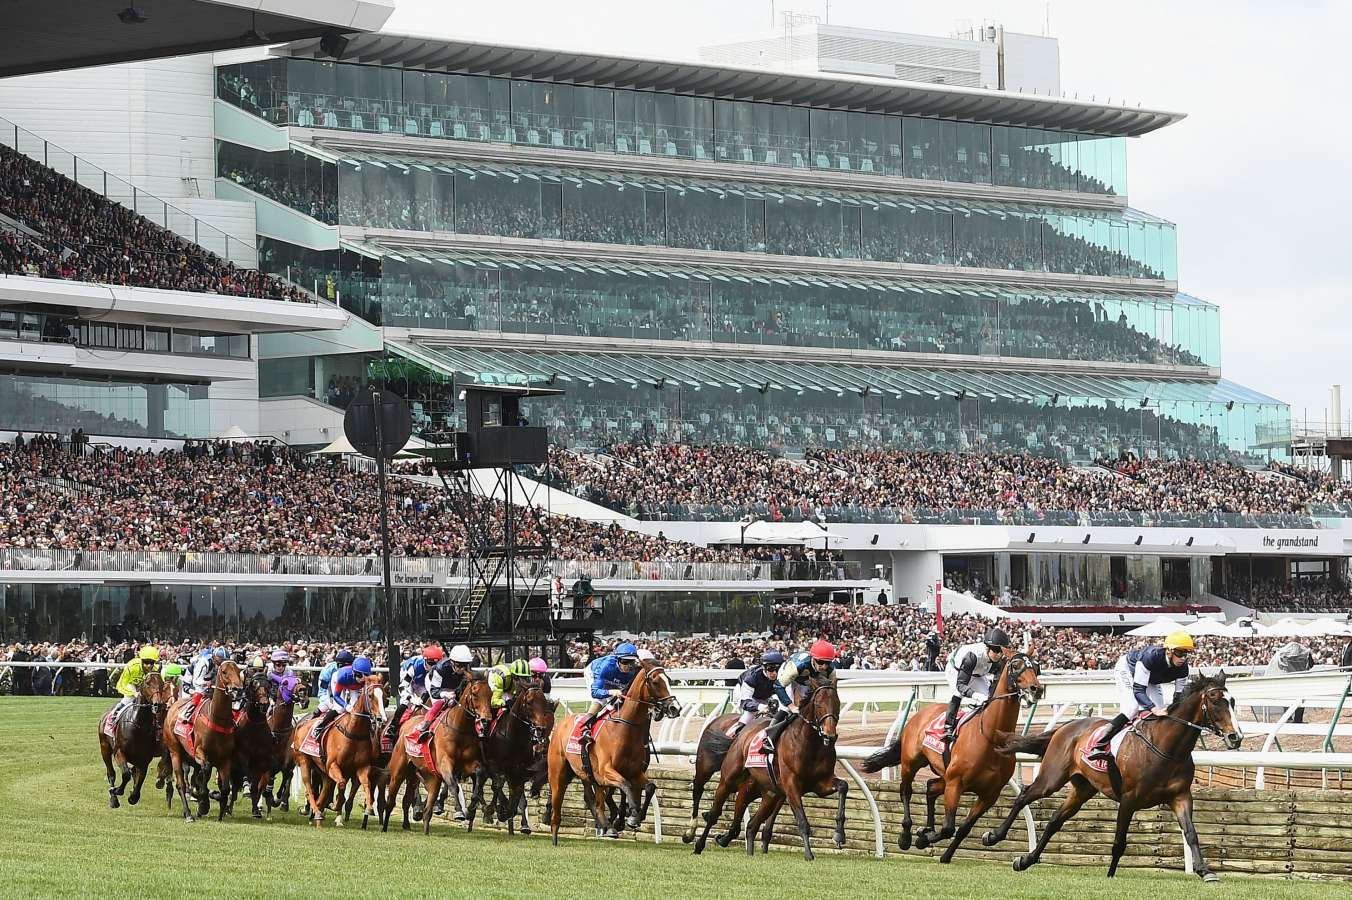 Melbourne Cup: Cross Counter wins dramatic Cup, ending Godolphin drought